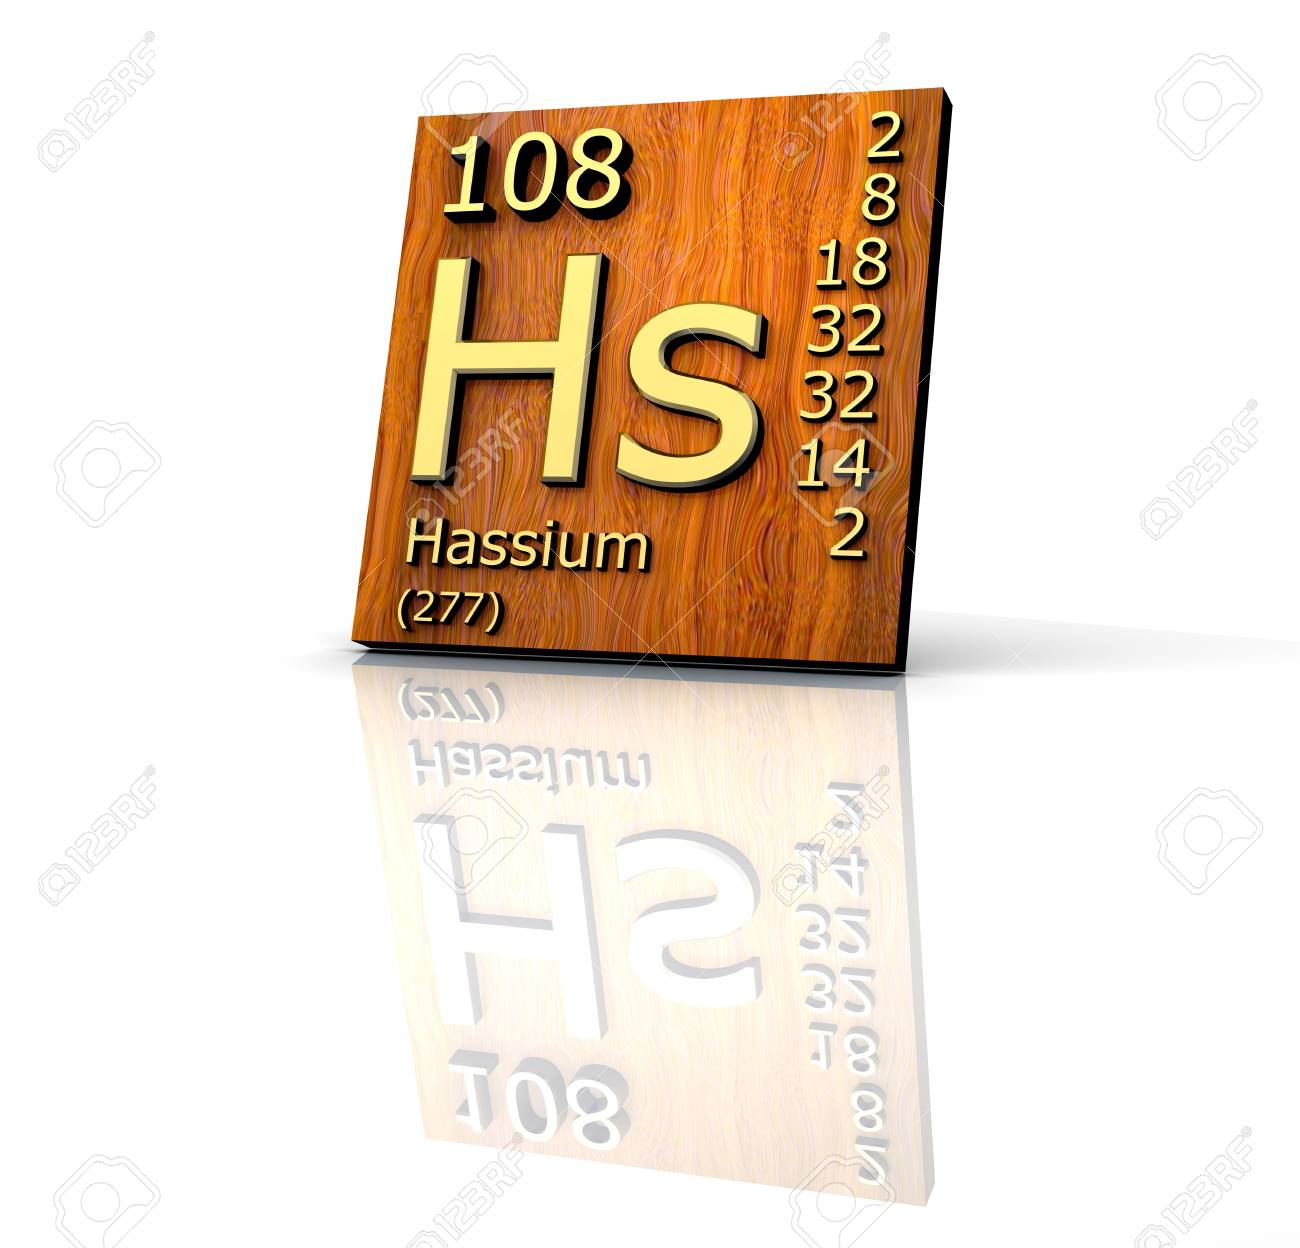 Hassium Periodic Table of Elements - wood board - 3d made Stock Photo - 7481492